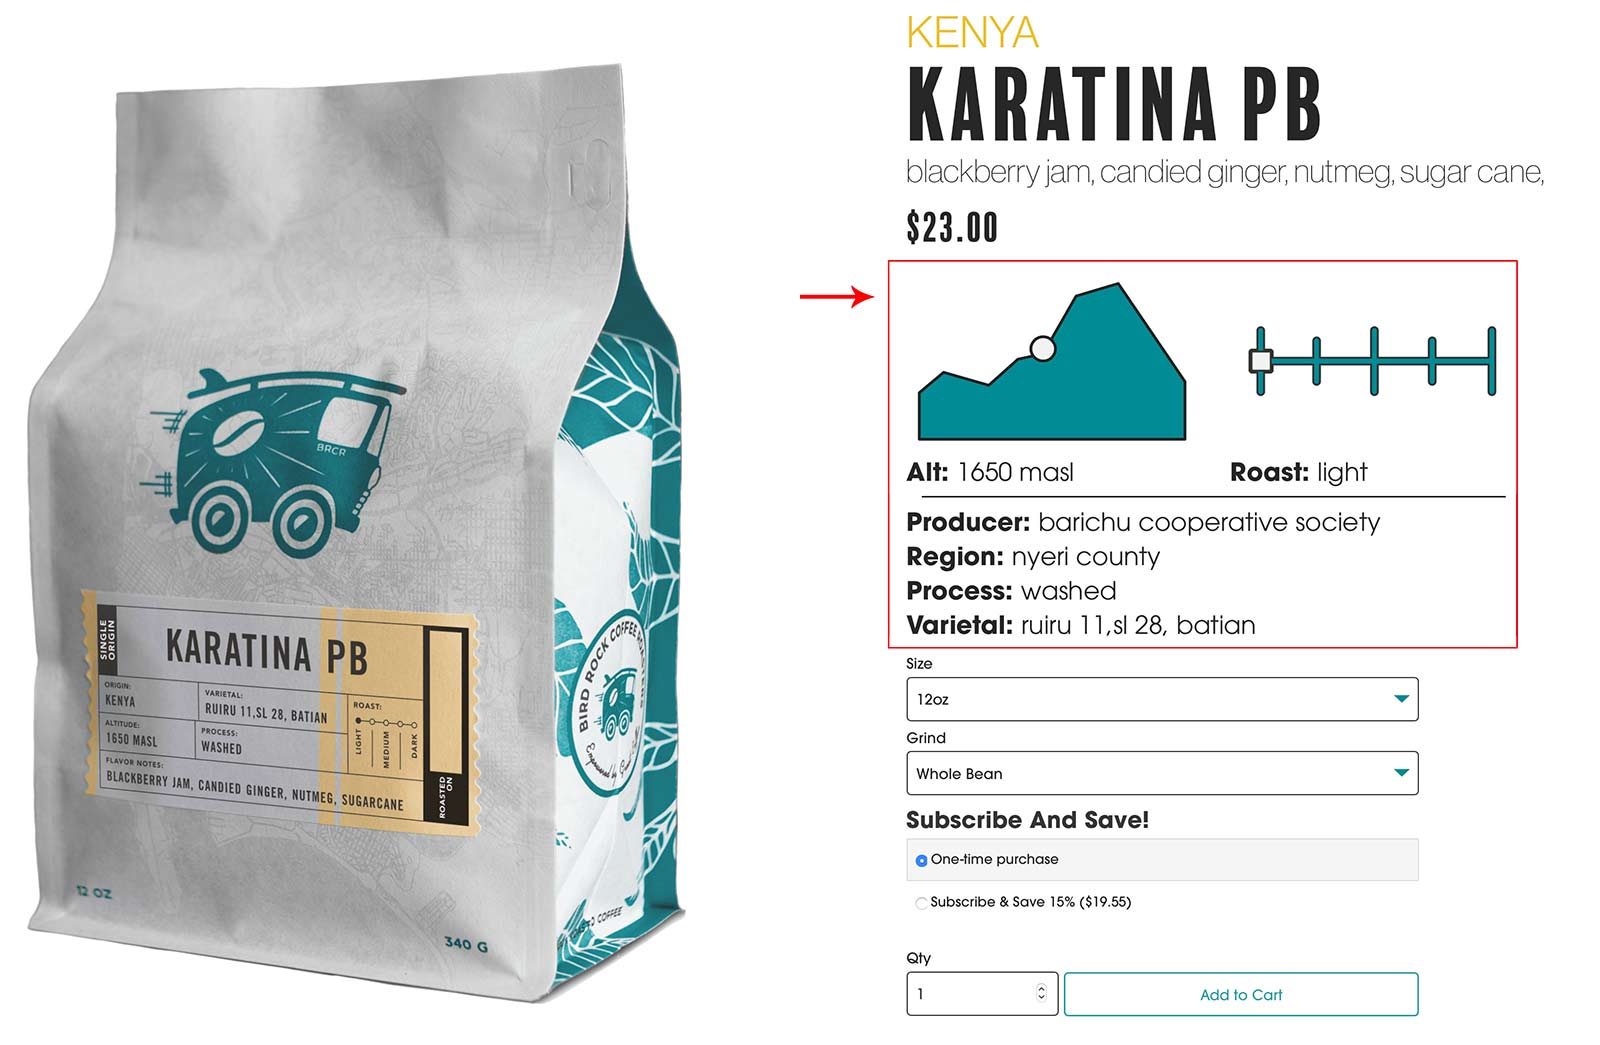 Bird Rock Coffee Product Page - featuring a chart for altitude and roast level